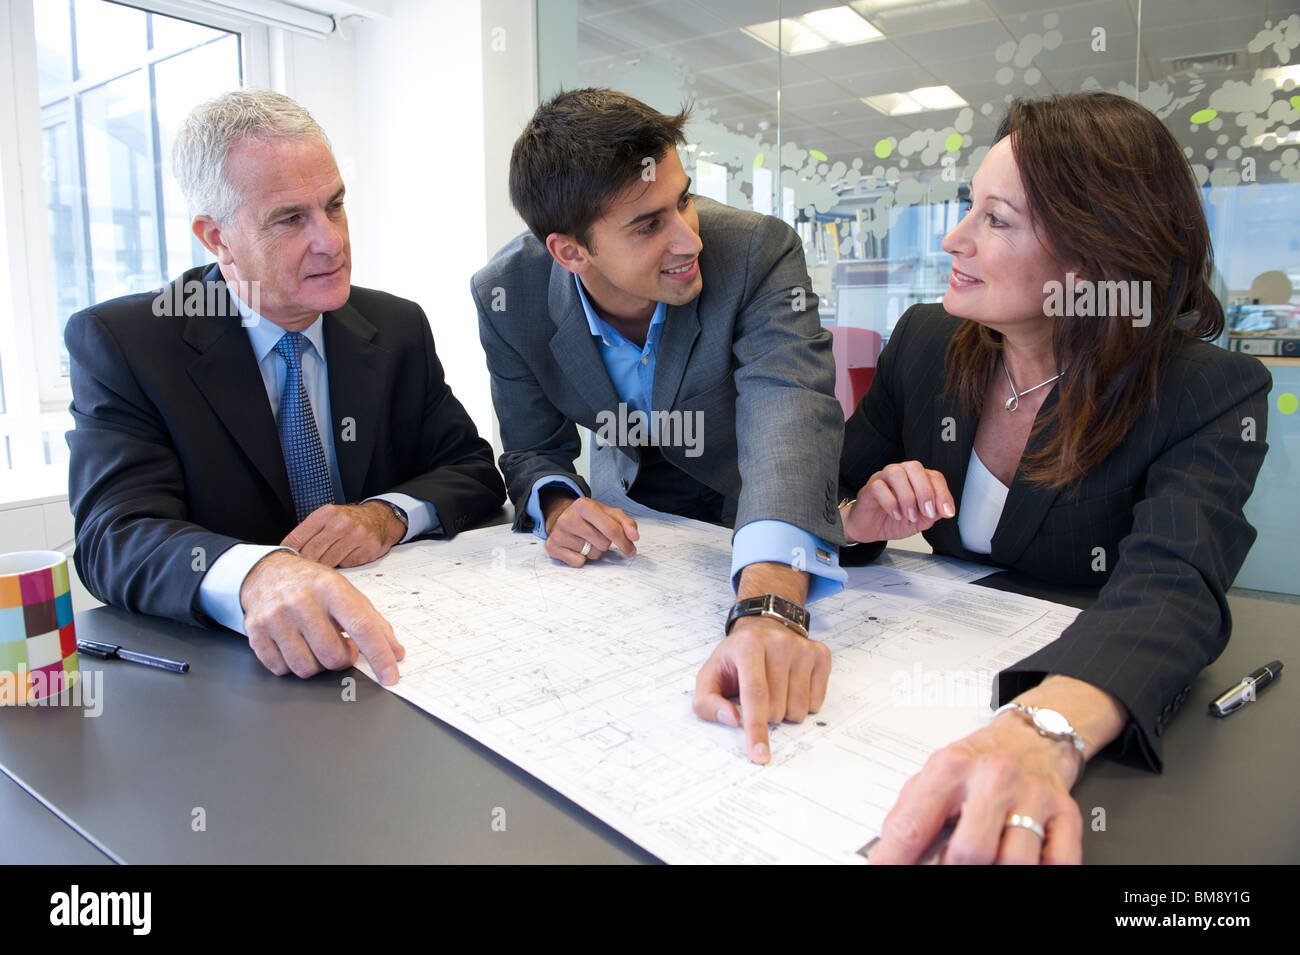 Business meeting with plans - Stock Image